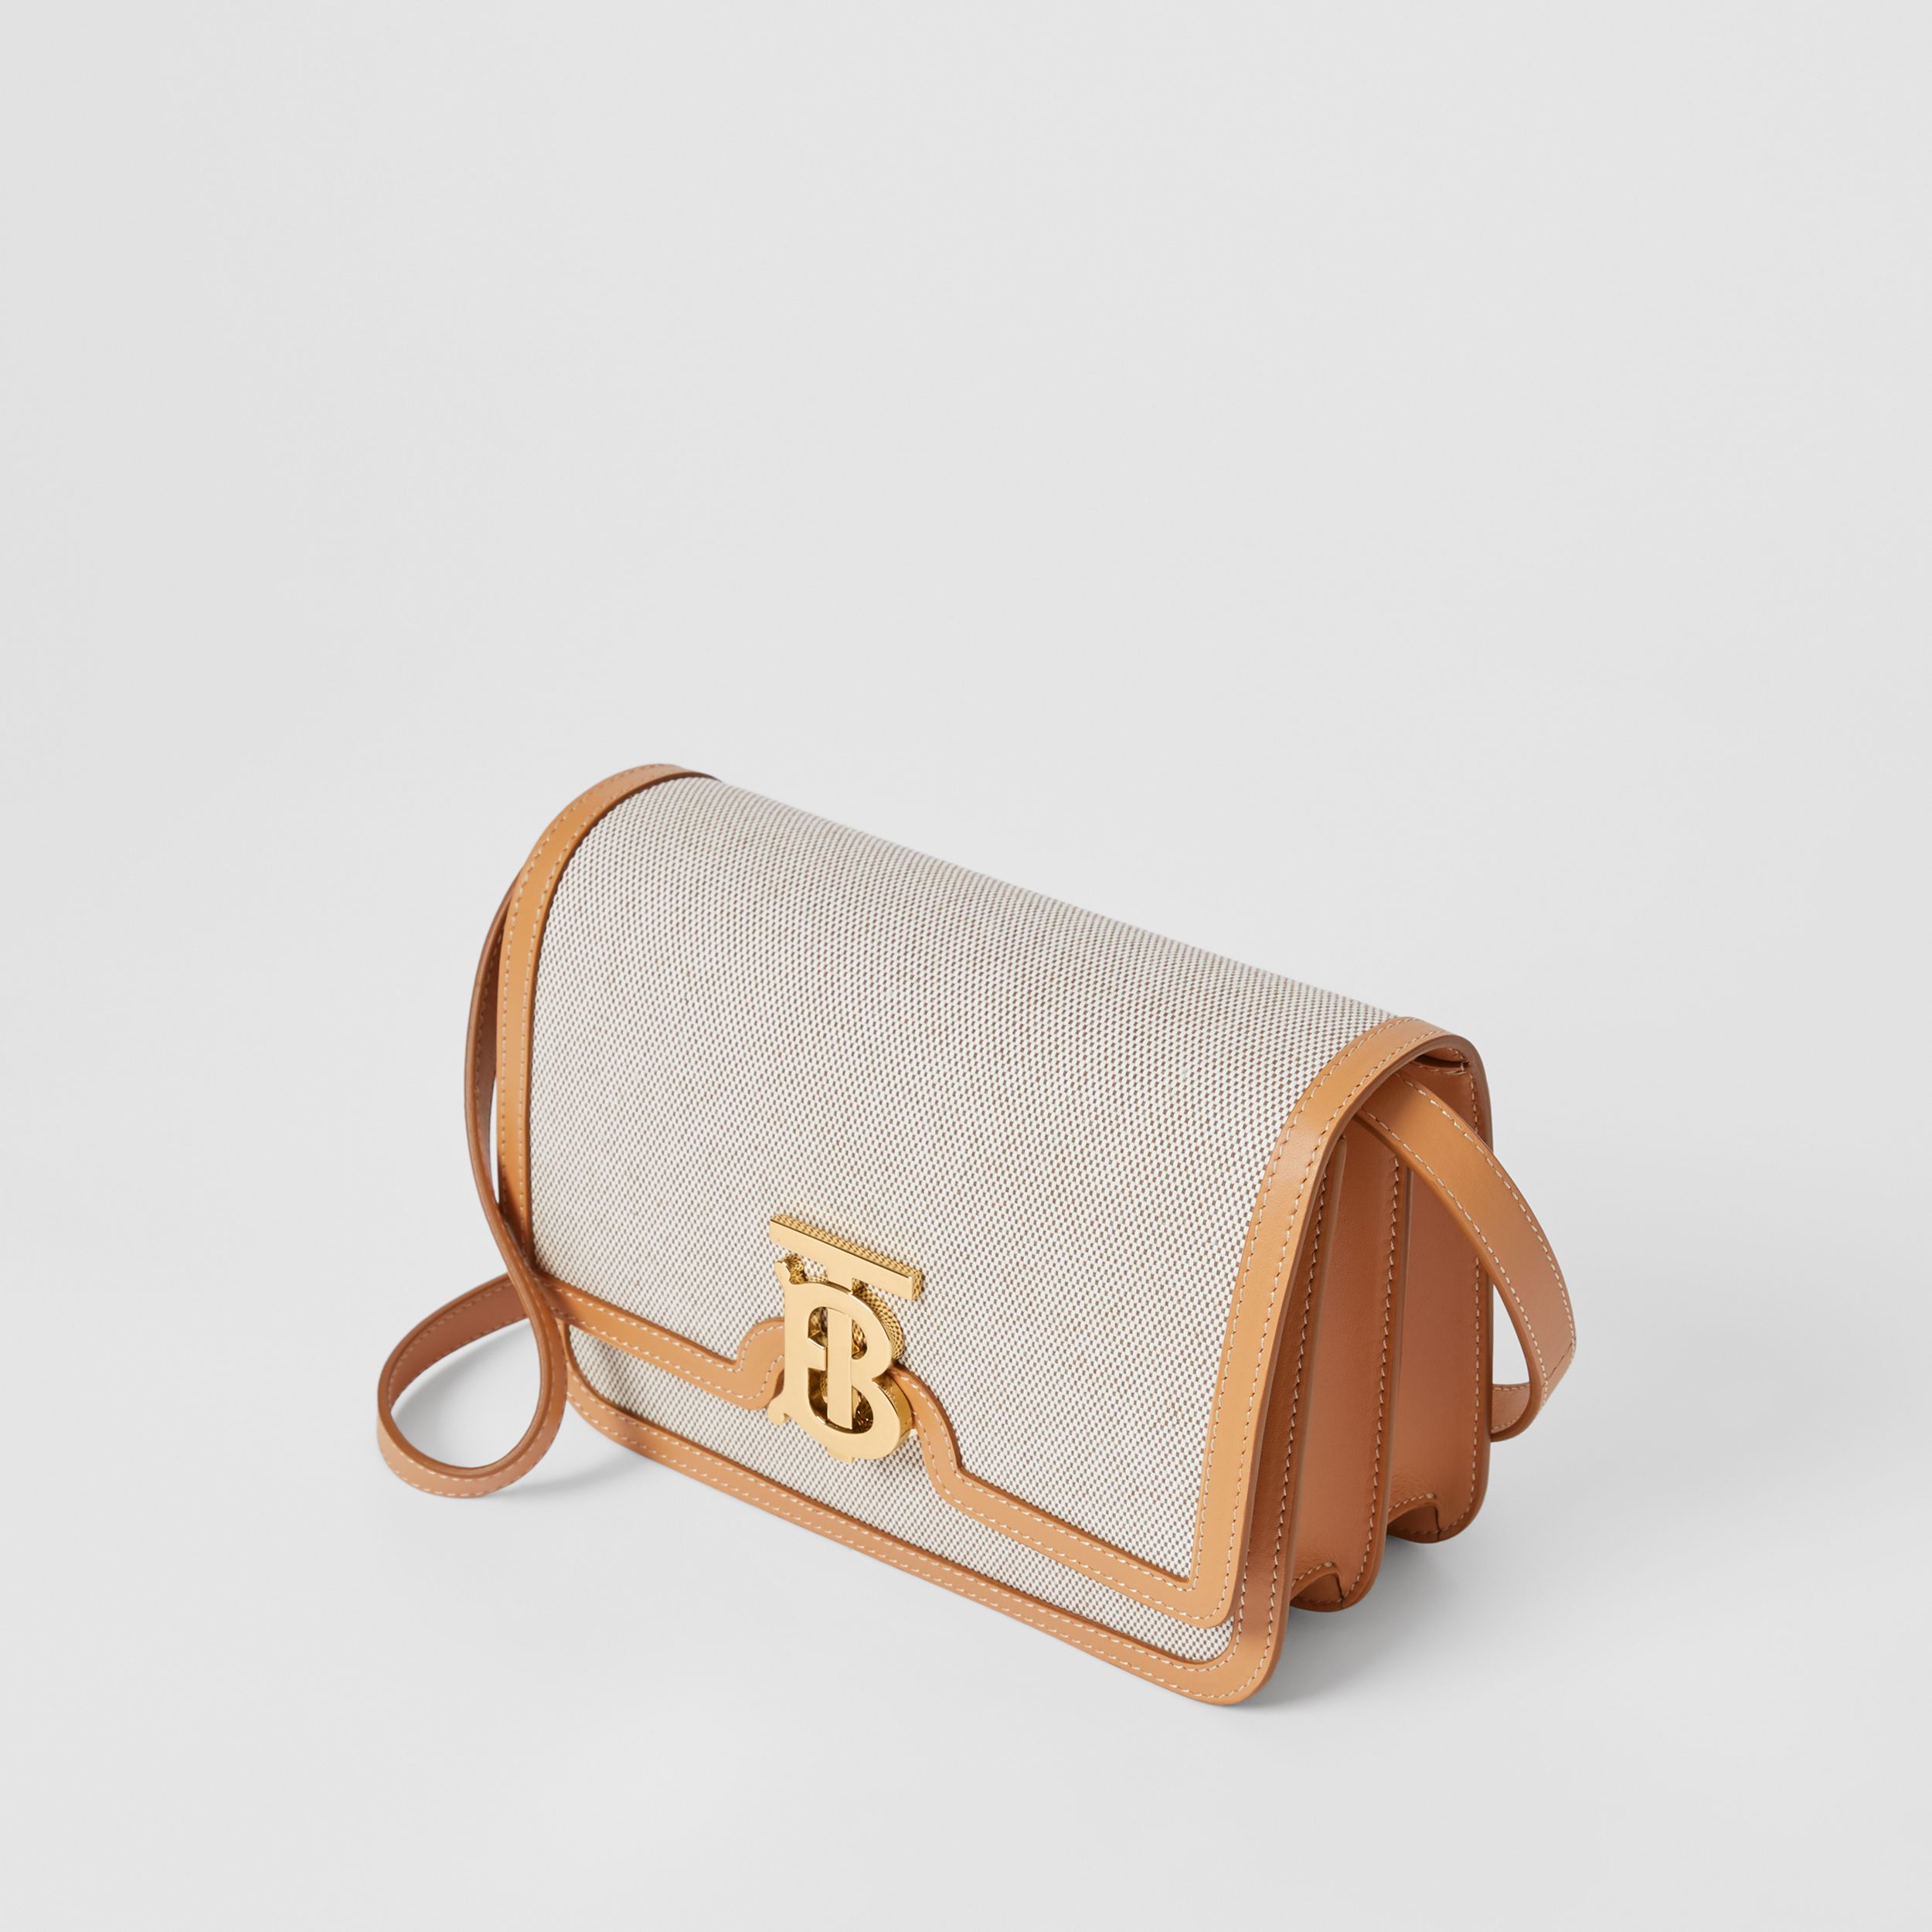 Small Two-tone Canvas and Leather TB Bag in Soft Fawn/warm Sand - Women | Burberry United Kingdom - 4